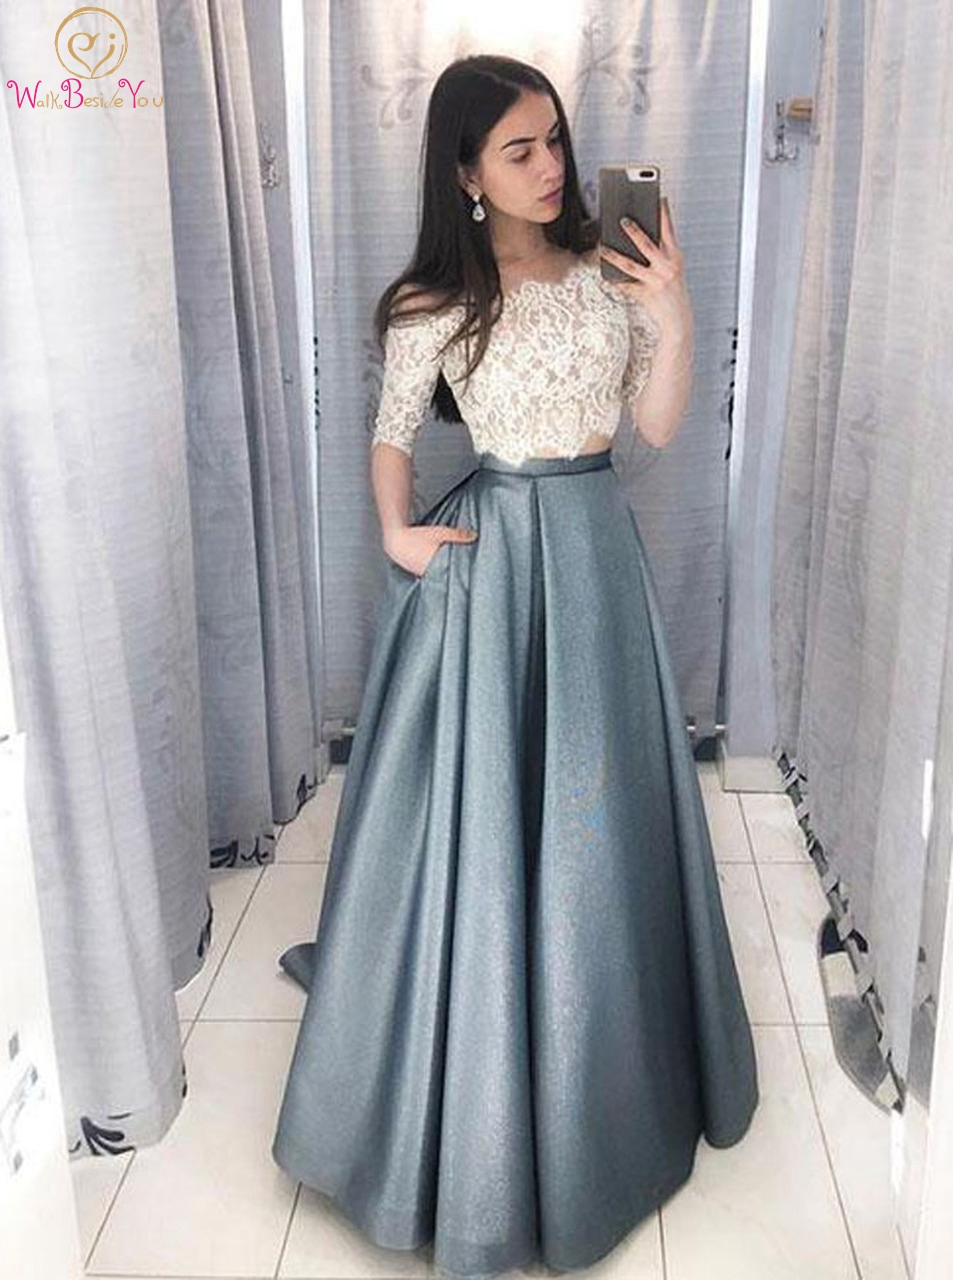 Two Pieces Prom Dresses Ivory-blue Off Shoulder 3/4 Sleeve Boat Neckline Lace Satin A Line Long Evening Gowns Formal Party 2020